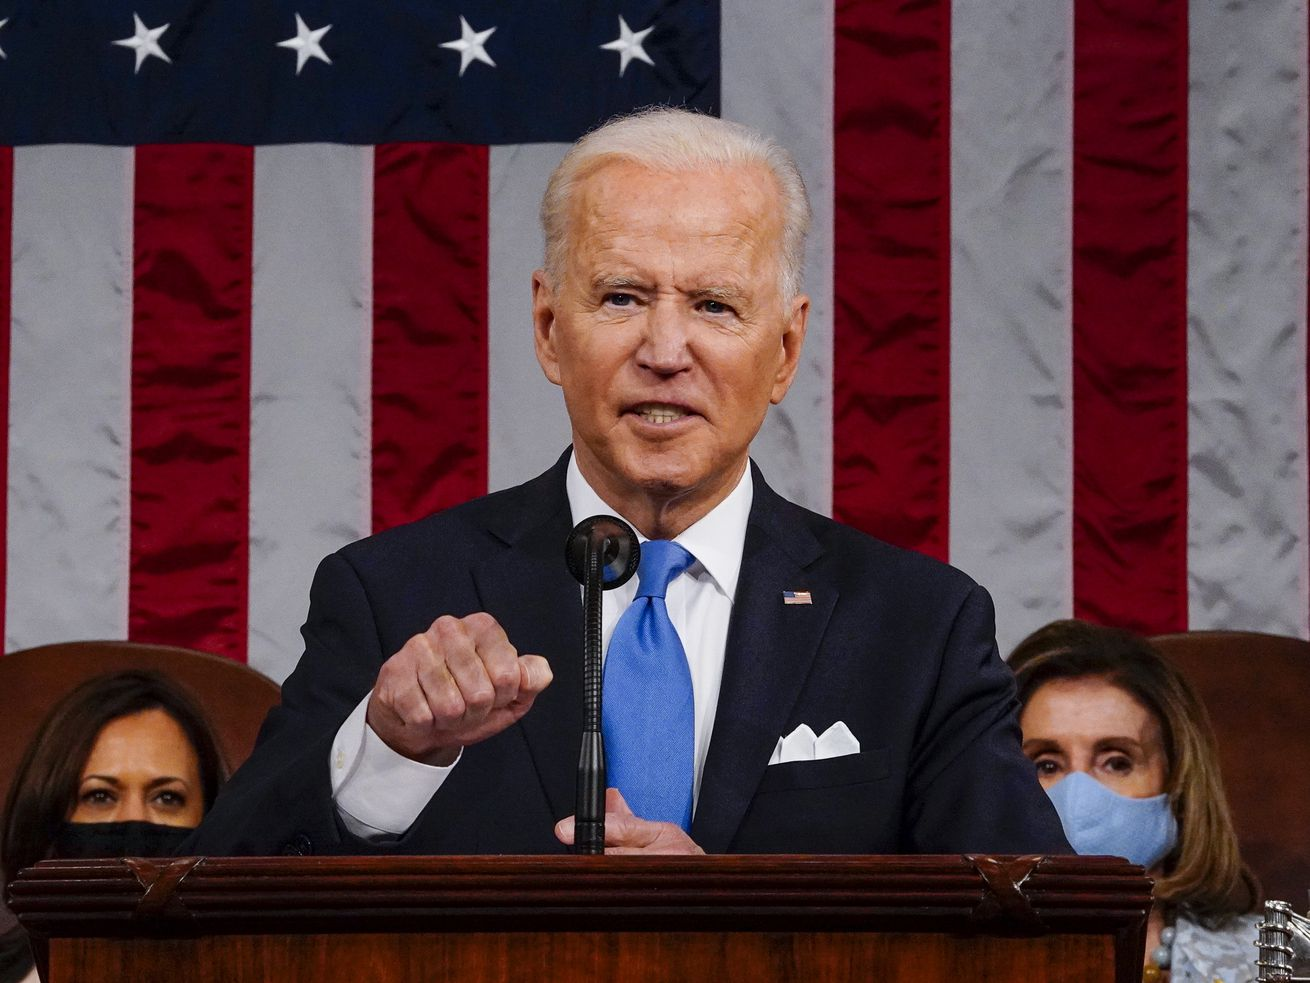 President Joe Biden standing and speaking with an American flag behind him and Kamala Harris and Nancy Pelosi in the background.